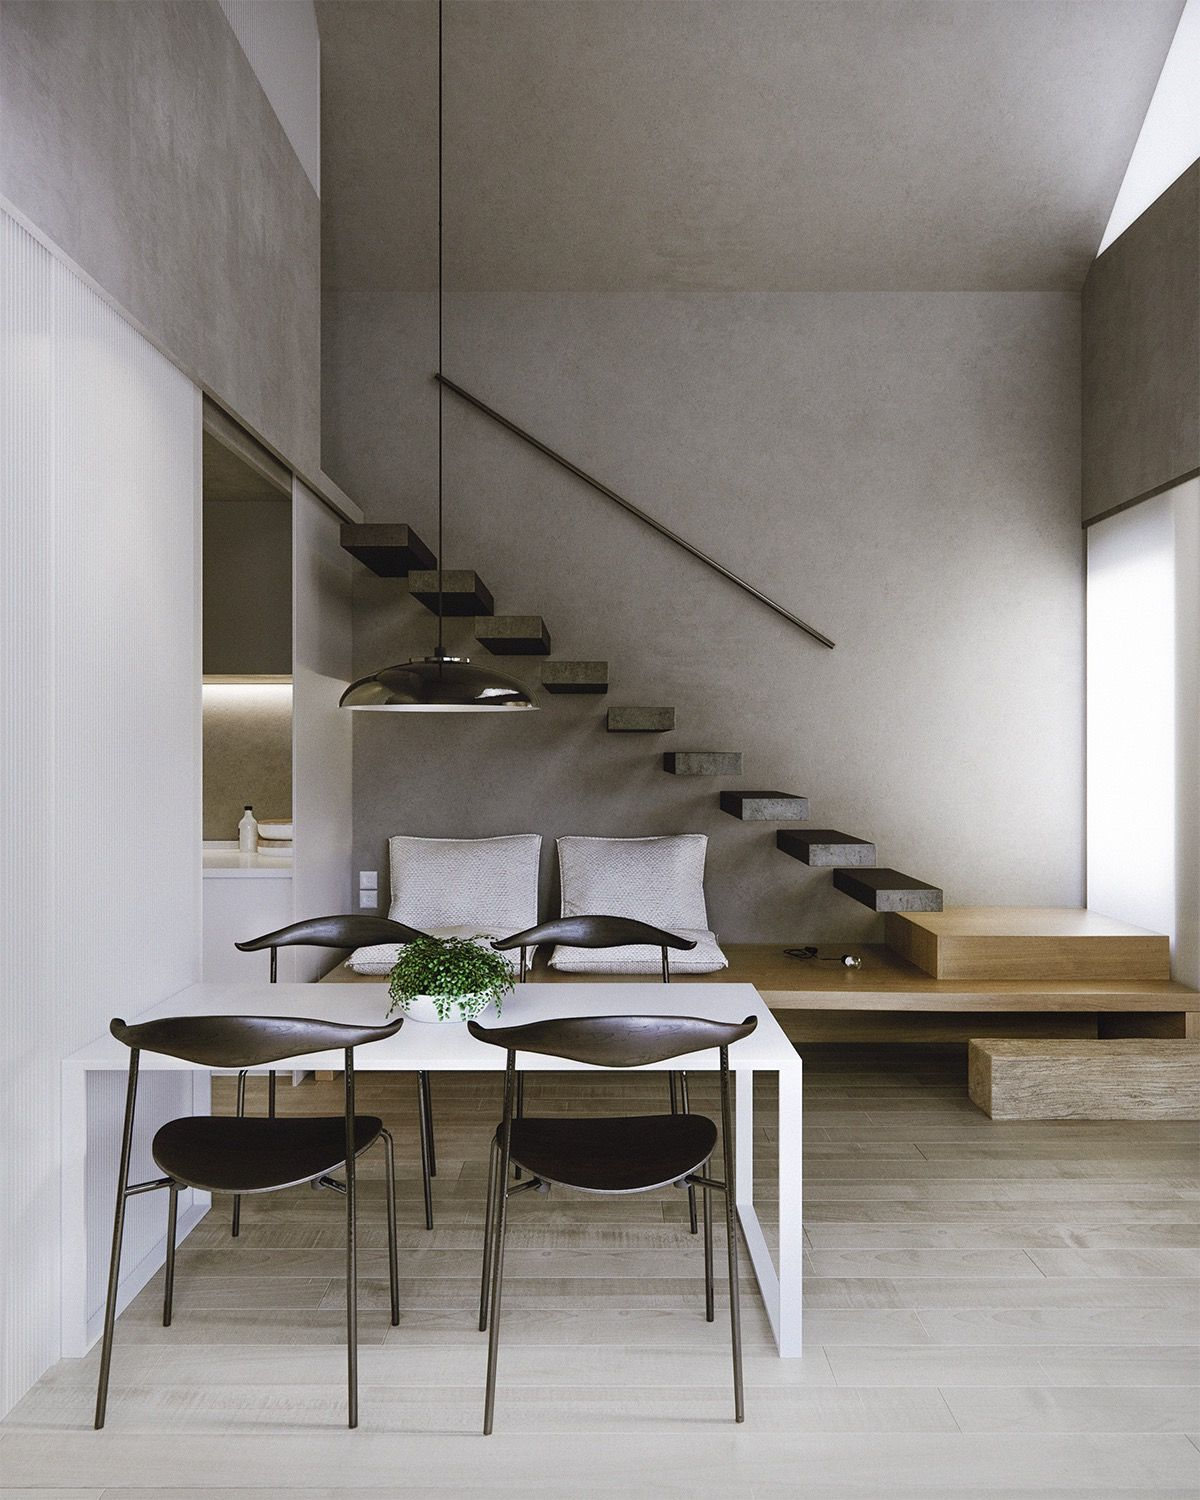 Inspirational Stairs Design: 51 Stunning Staircase Design Ideas